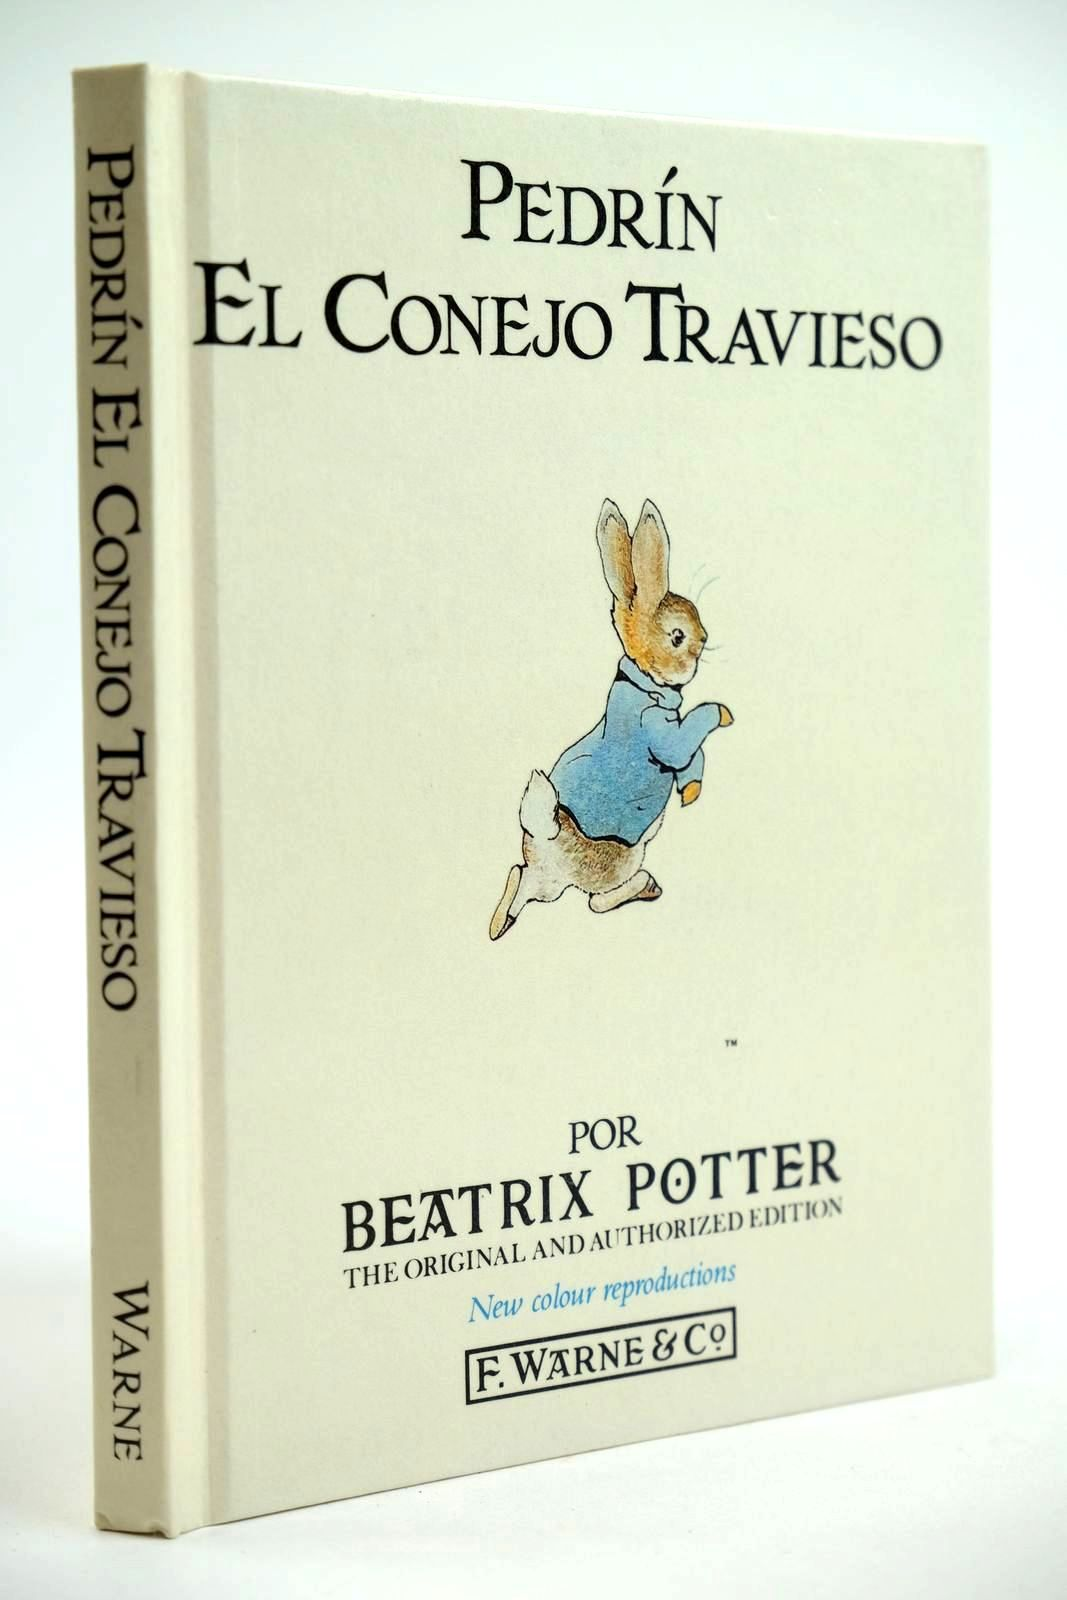 Photo of PEDRIN EL CONEJO TRAVIESO written by Potter, Beatrix illustrated by Potter, Beatrix published by Frederick Warne & Co Ltd. (STOCK CODE: 2132073)  for sale by Stella & Rose's Books